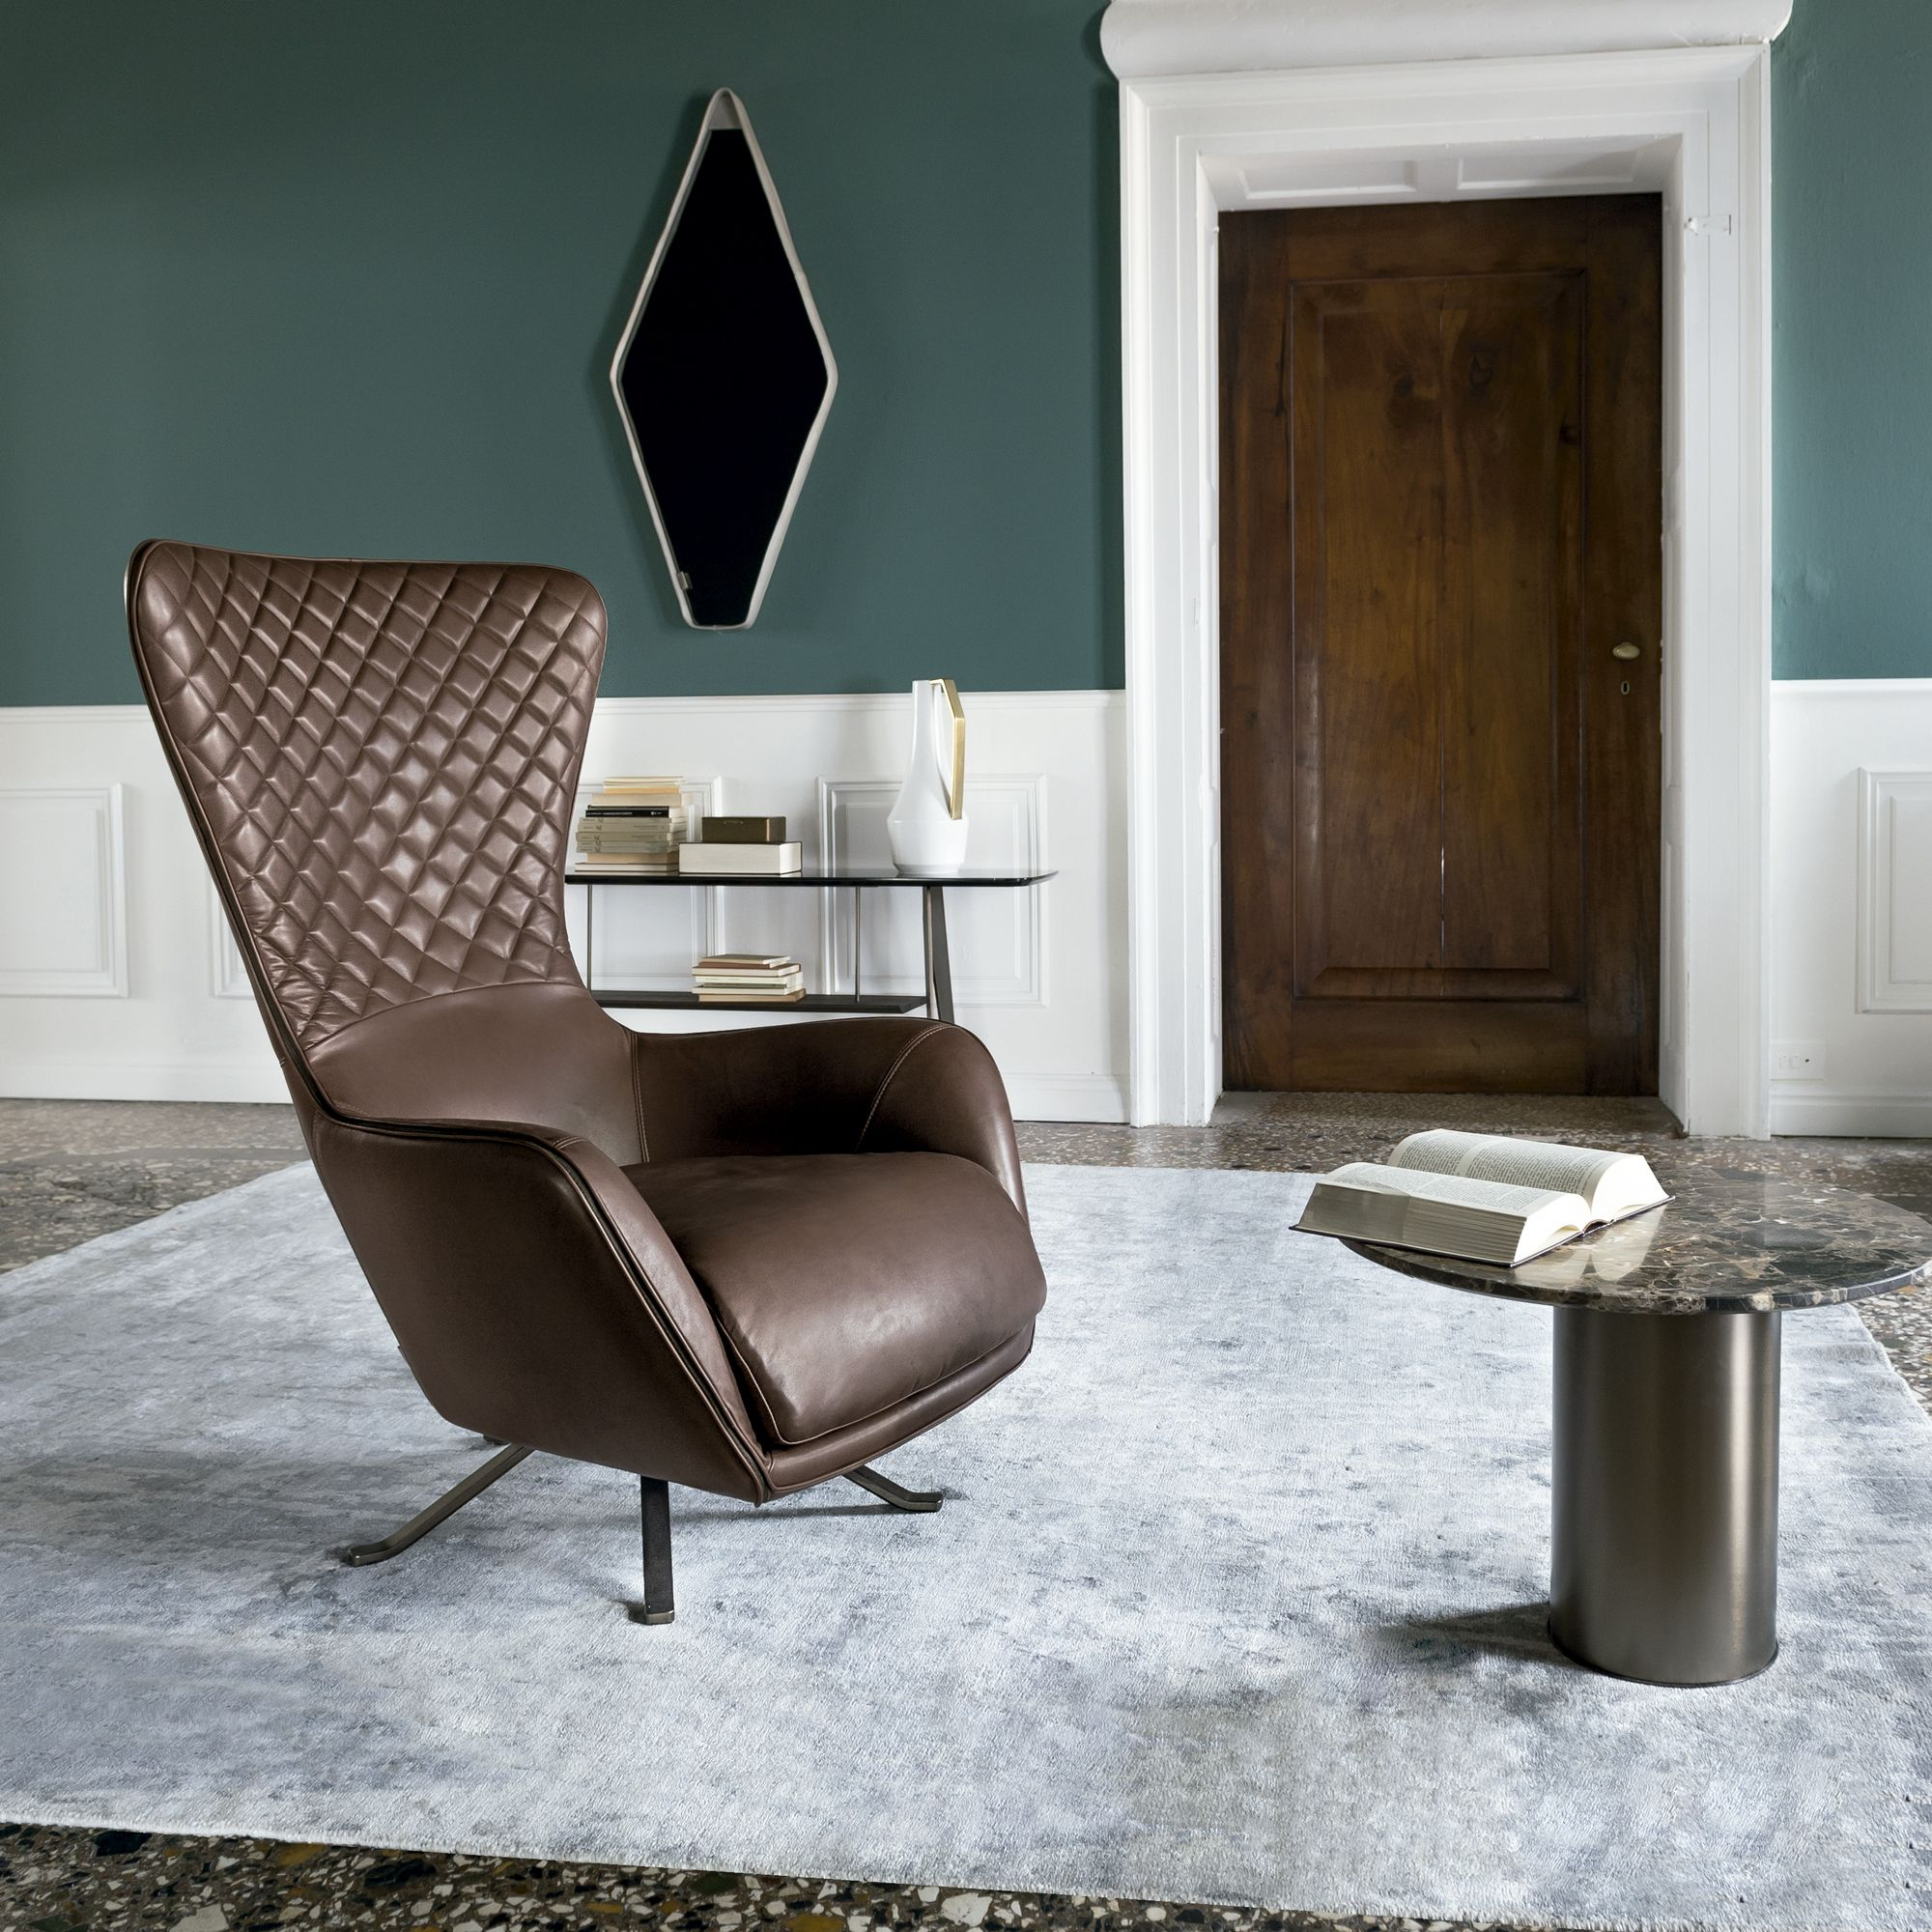 Nice Italian Designer Upholstered Sin Seaty Lounge Chair   High End Italian  Designer U0026 Luxury Furniture At Cassoni.com